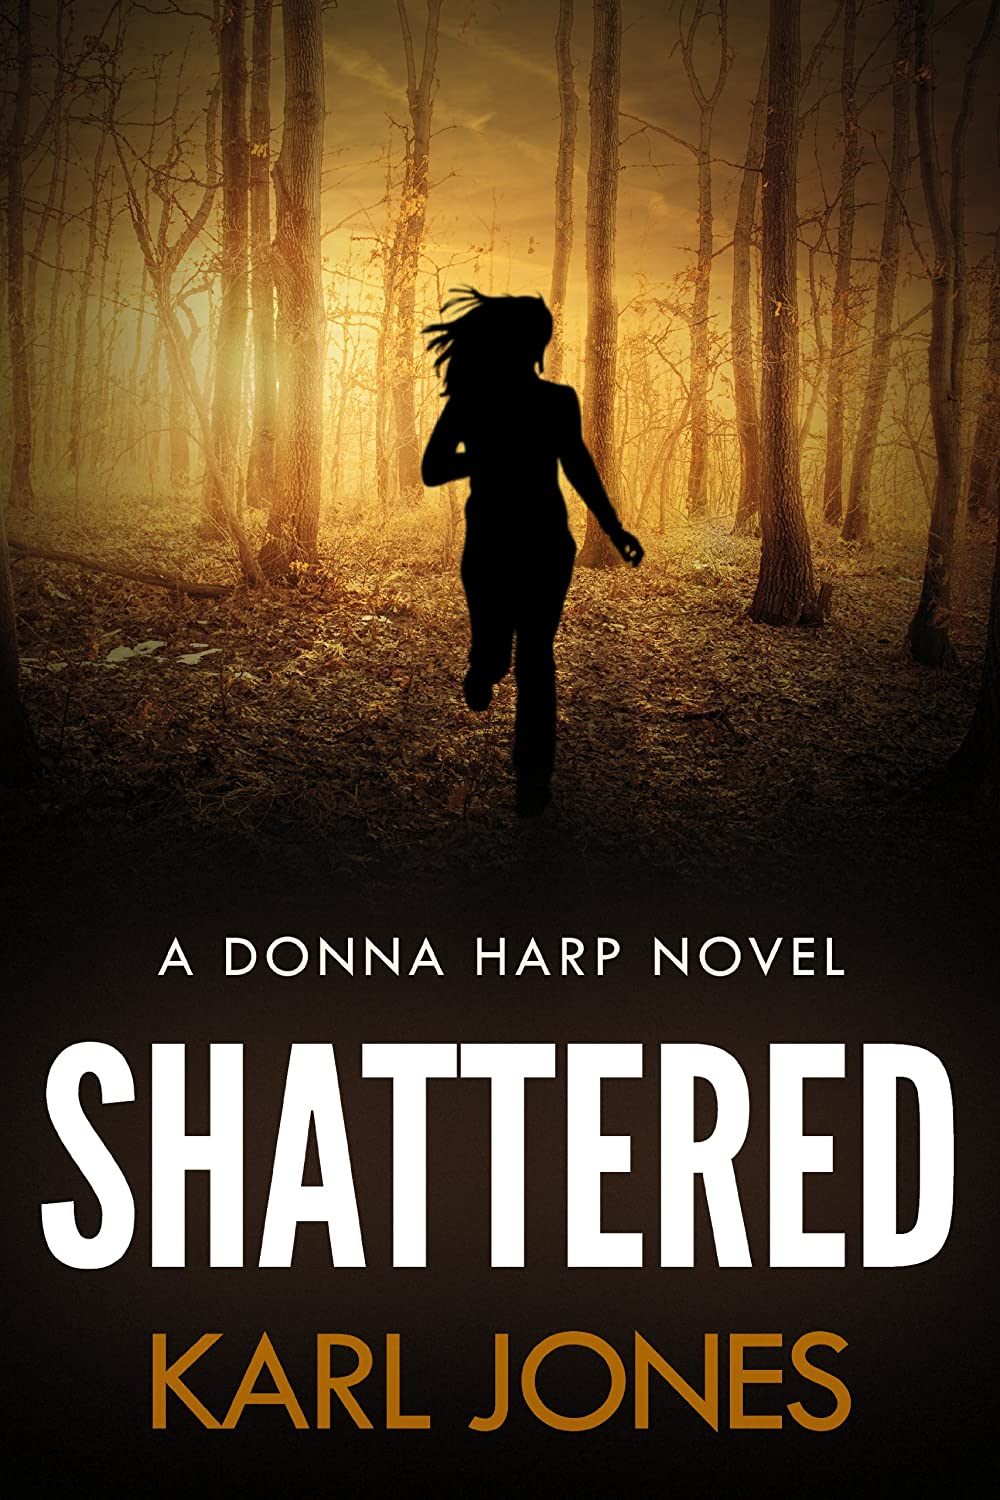 shattered-Karl-Jones